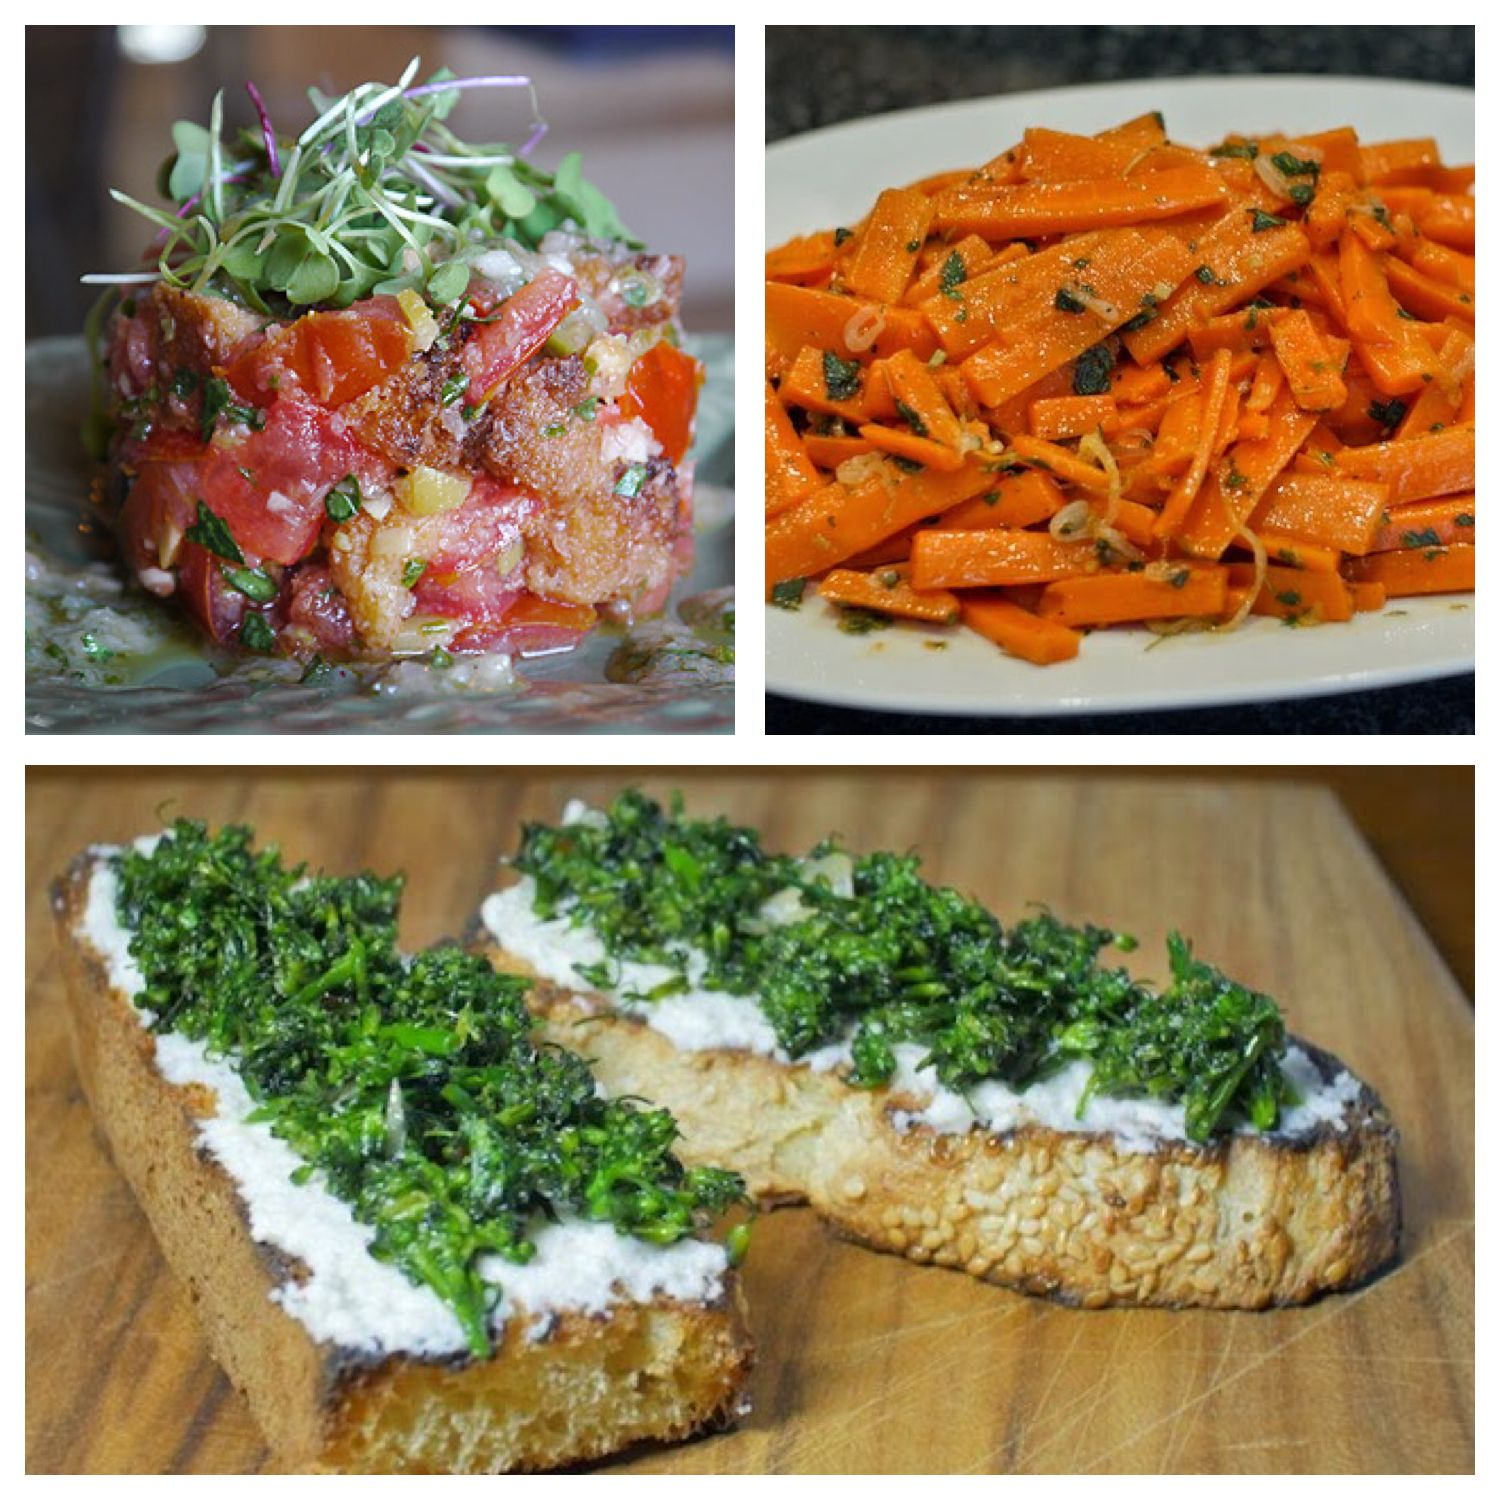 10 healthy inspiring recipes fresh from the farmers market food forumfinder Image collections